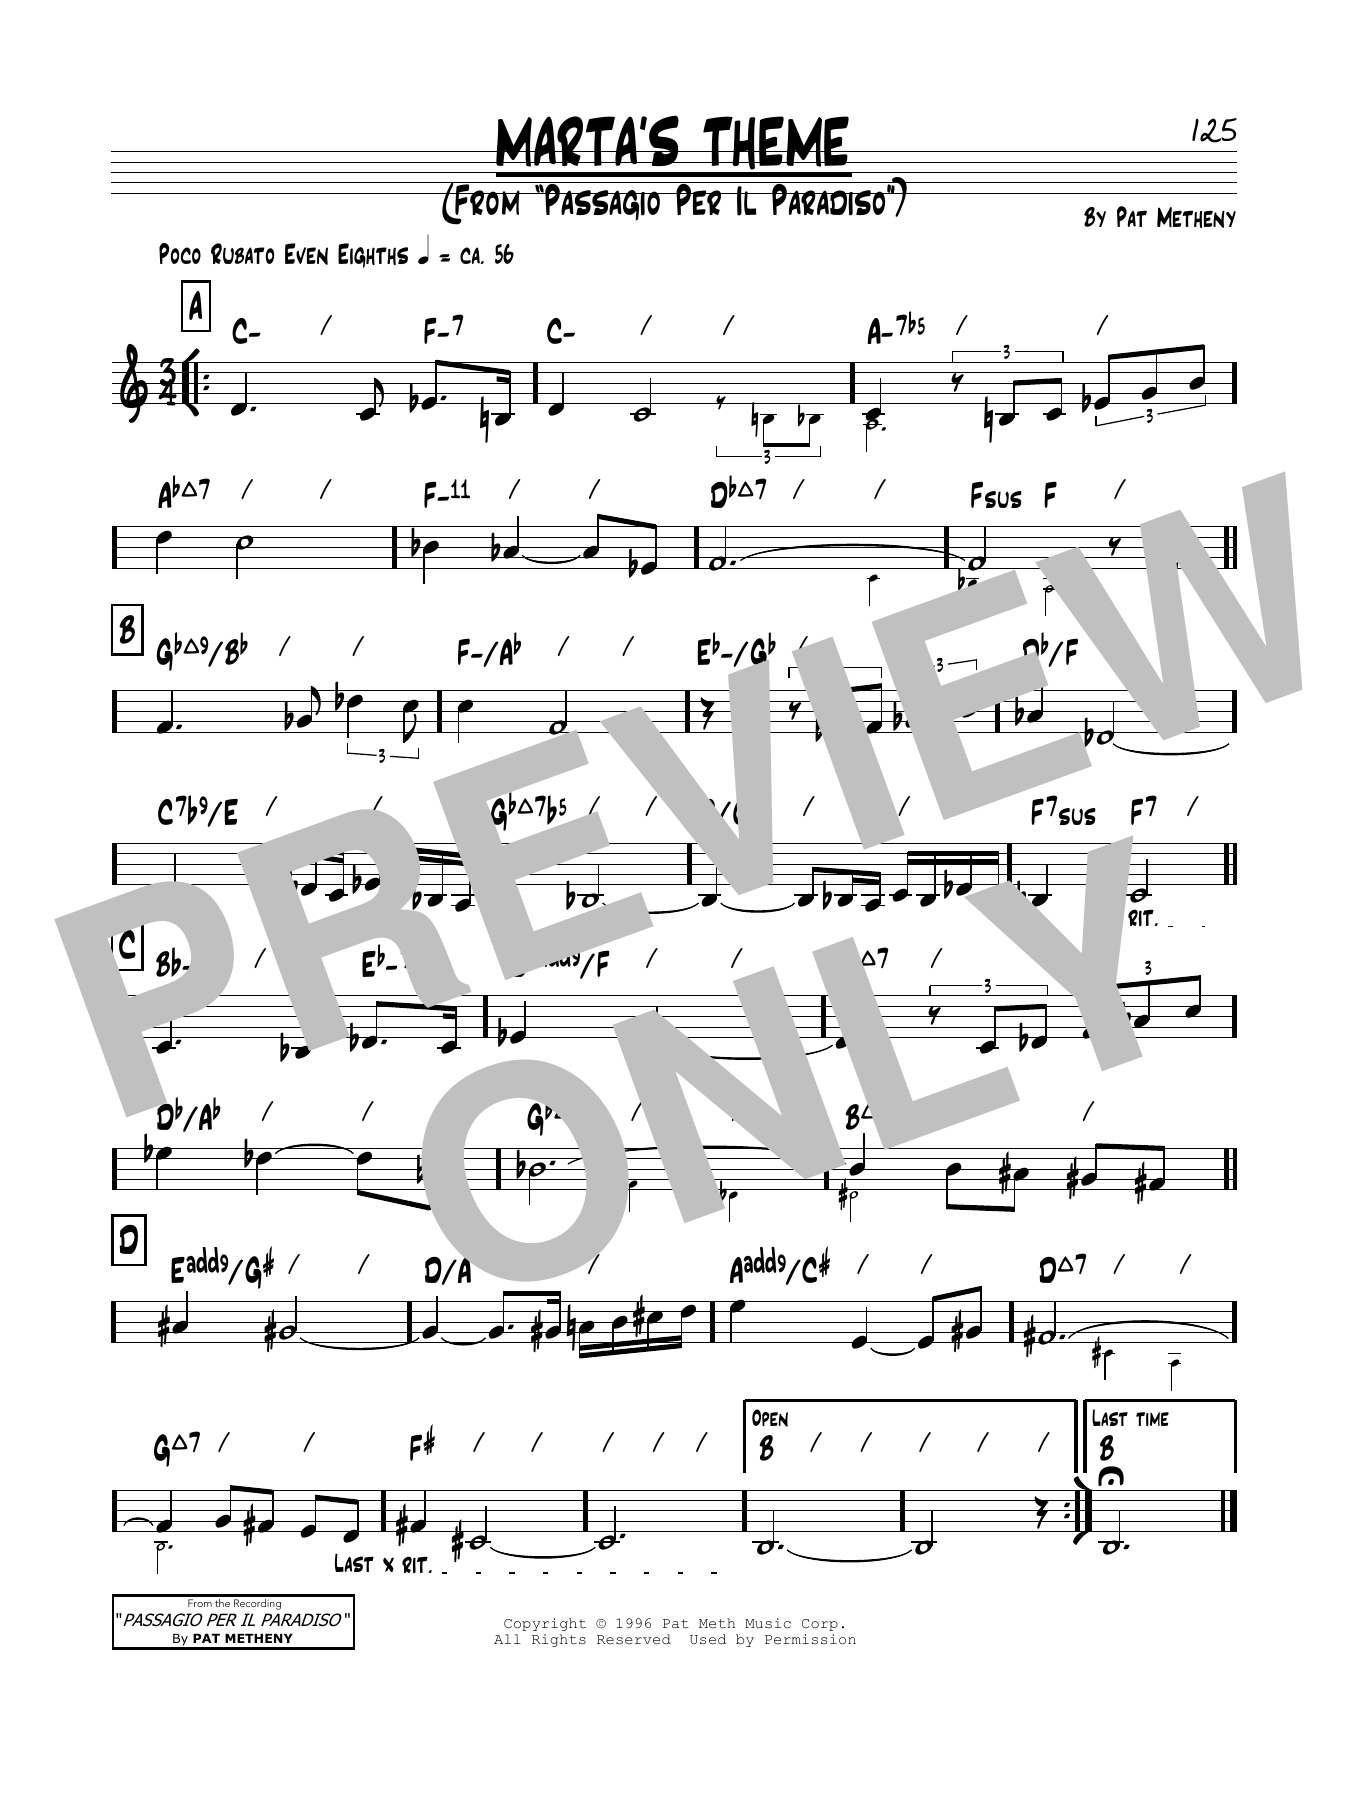 Marta's Theme Sheet Music